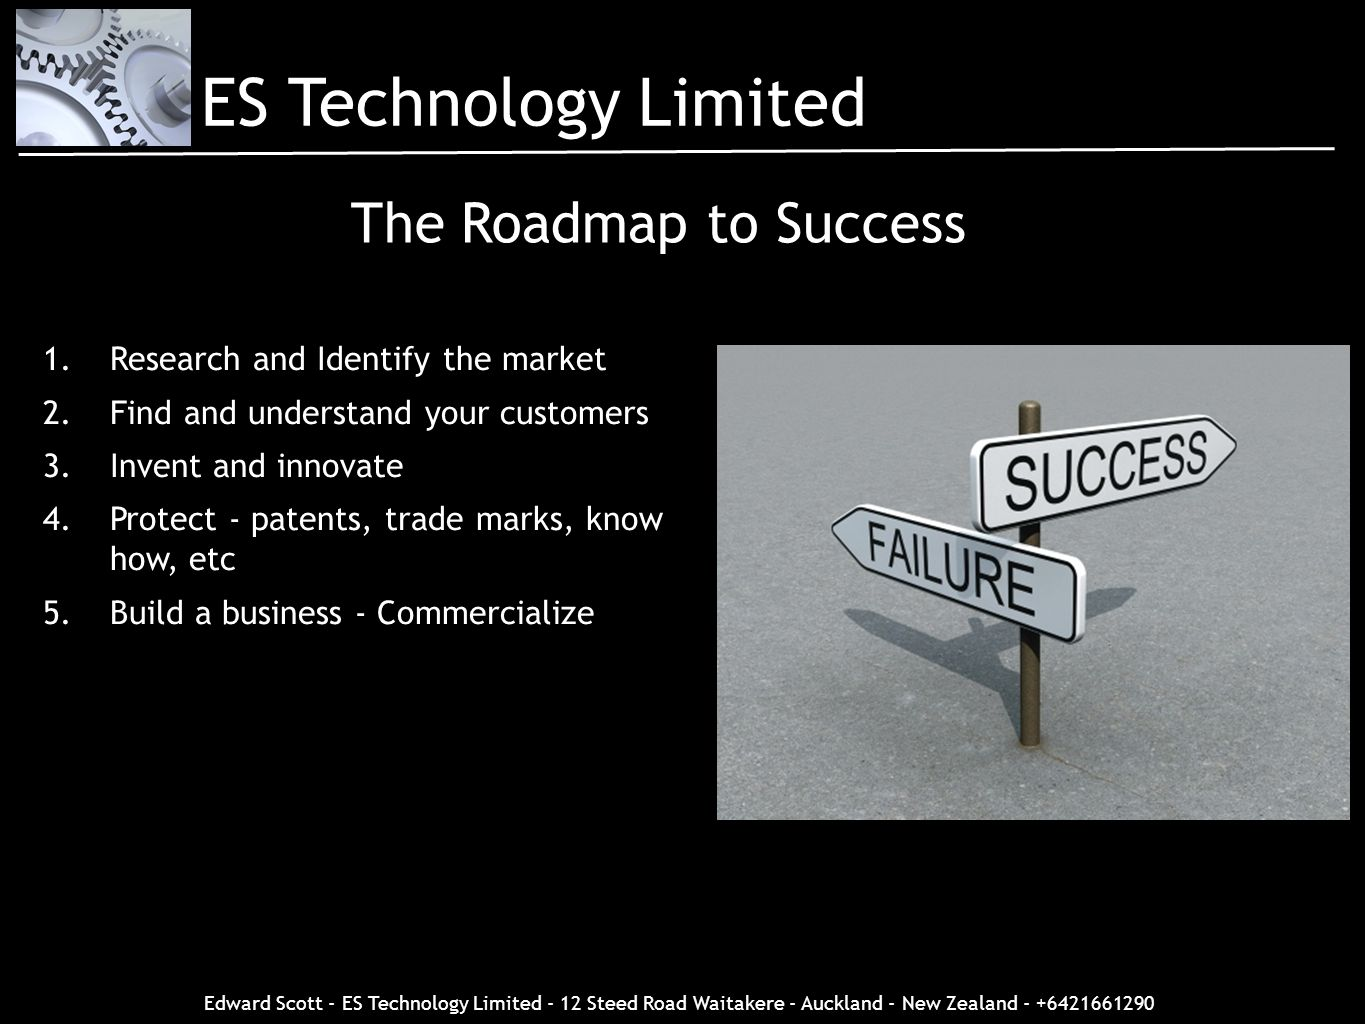 ES Technology Limited The Roadmap to Success